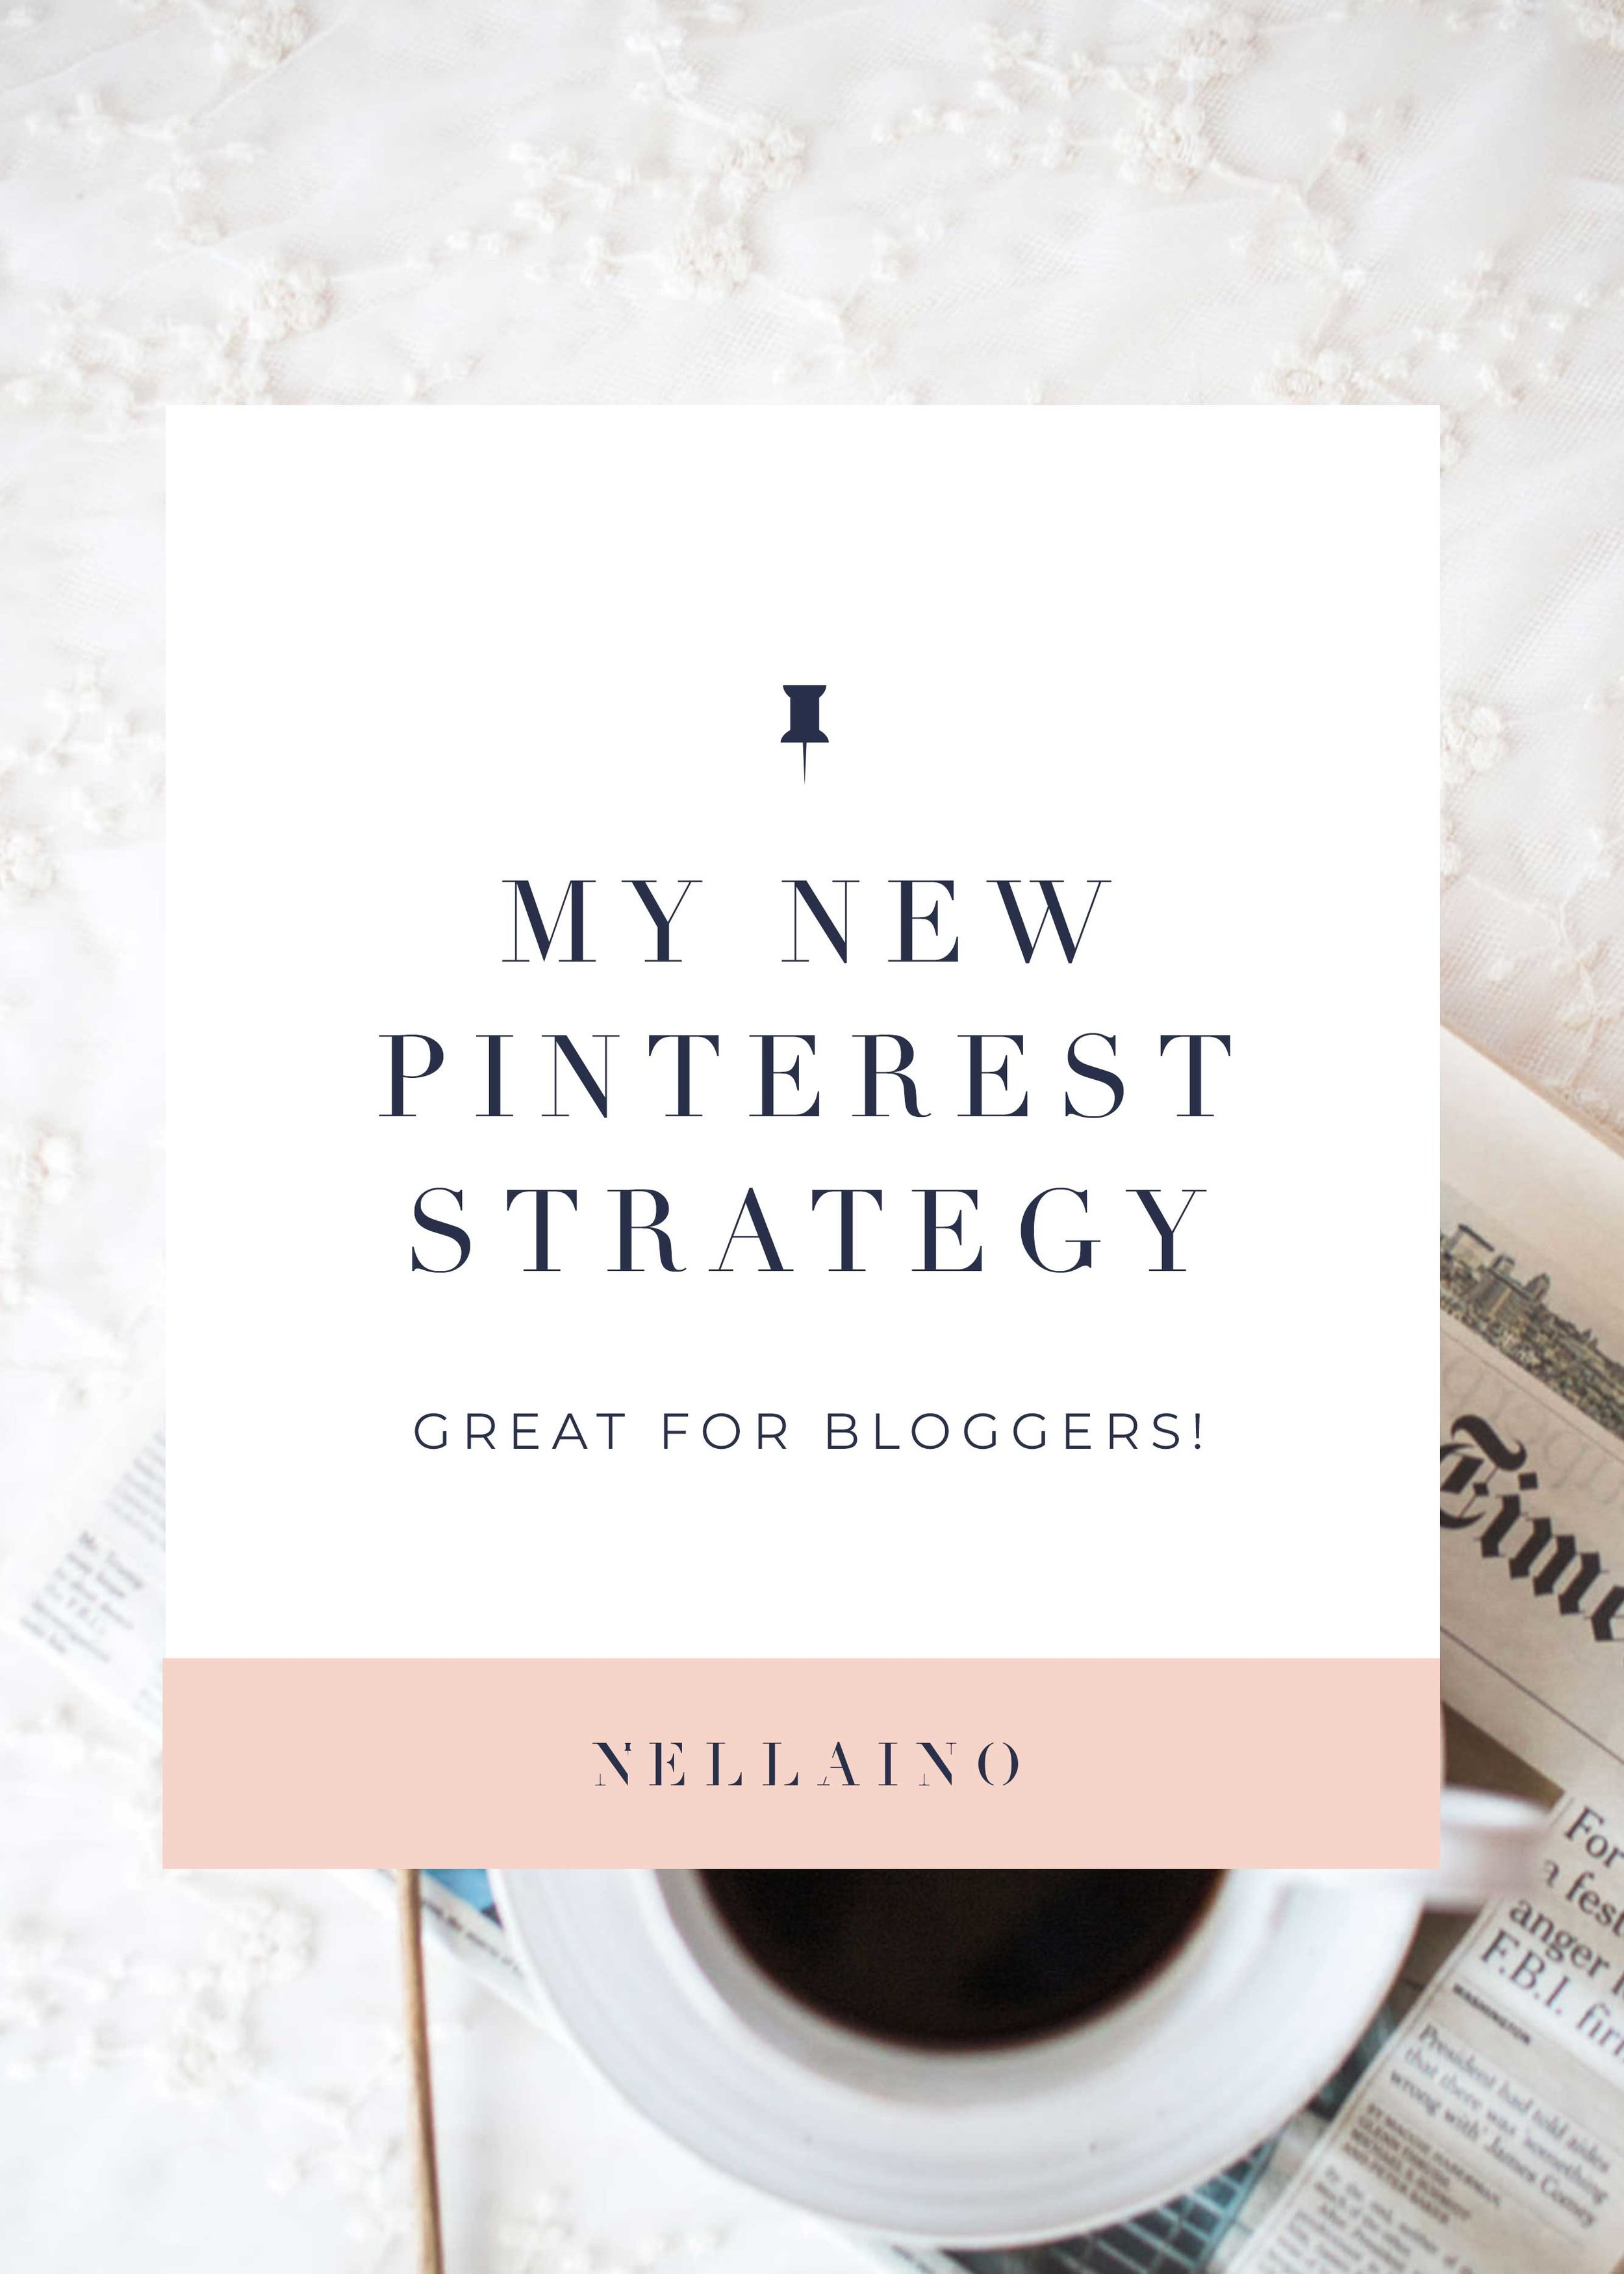 Pinterest-strategy-for-bloggers-by-Nellaino.jpg